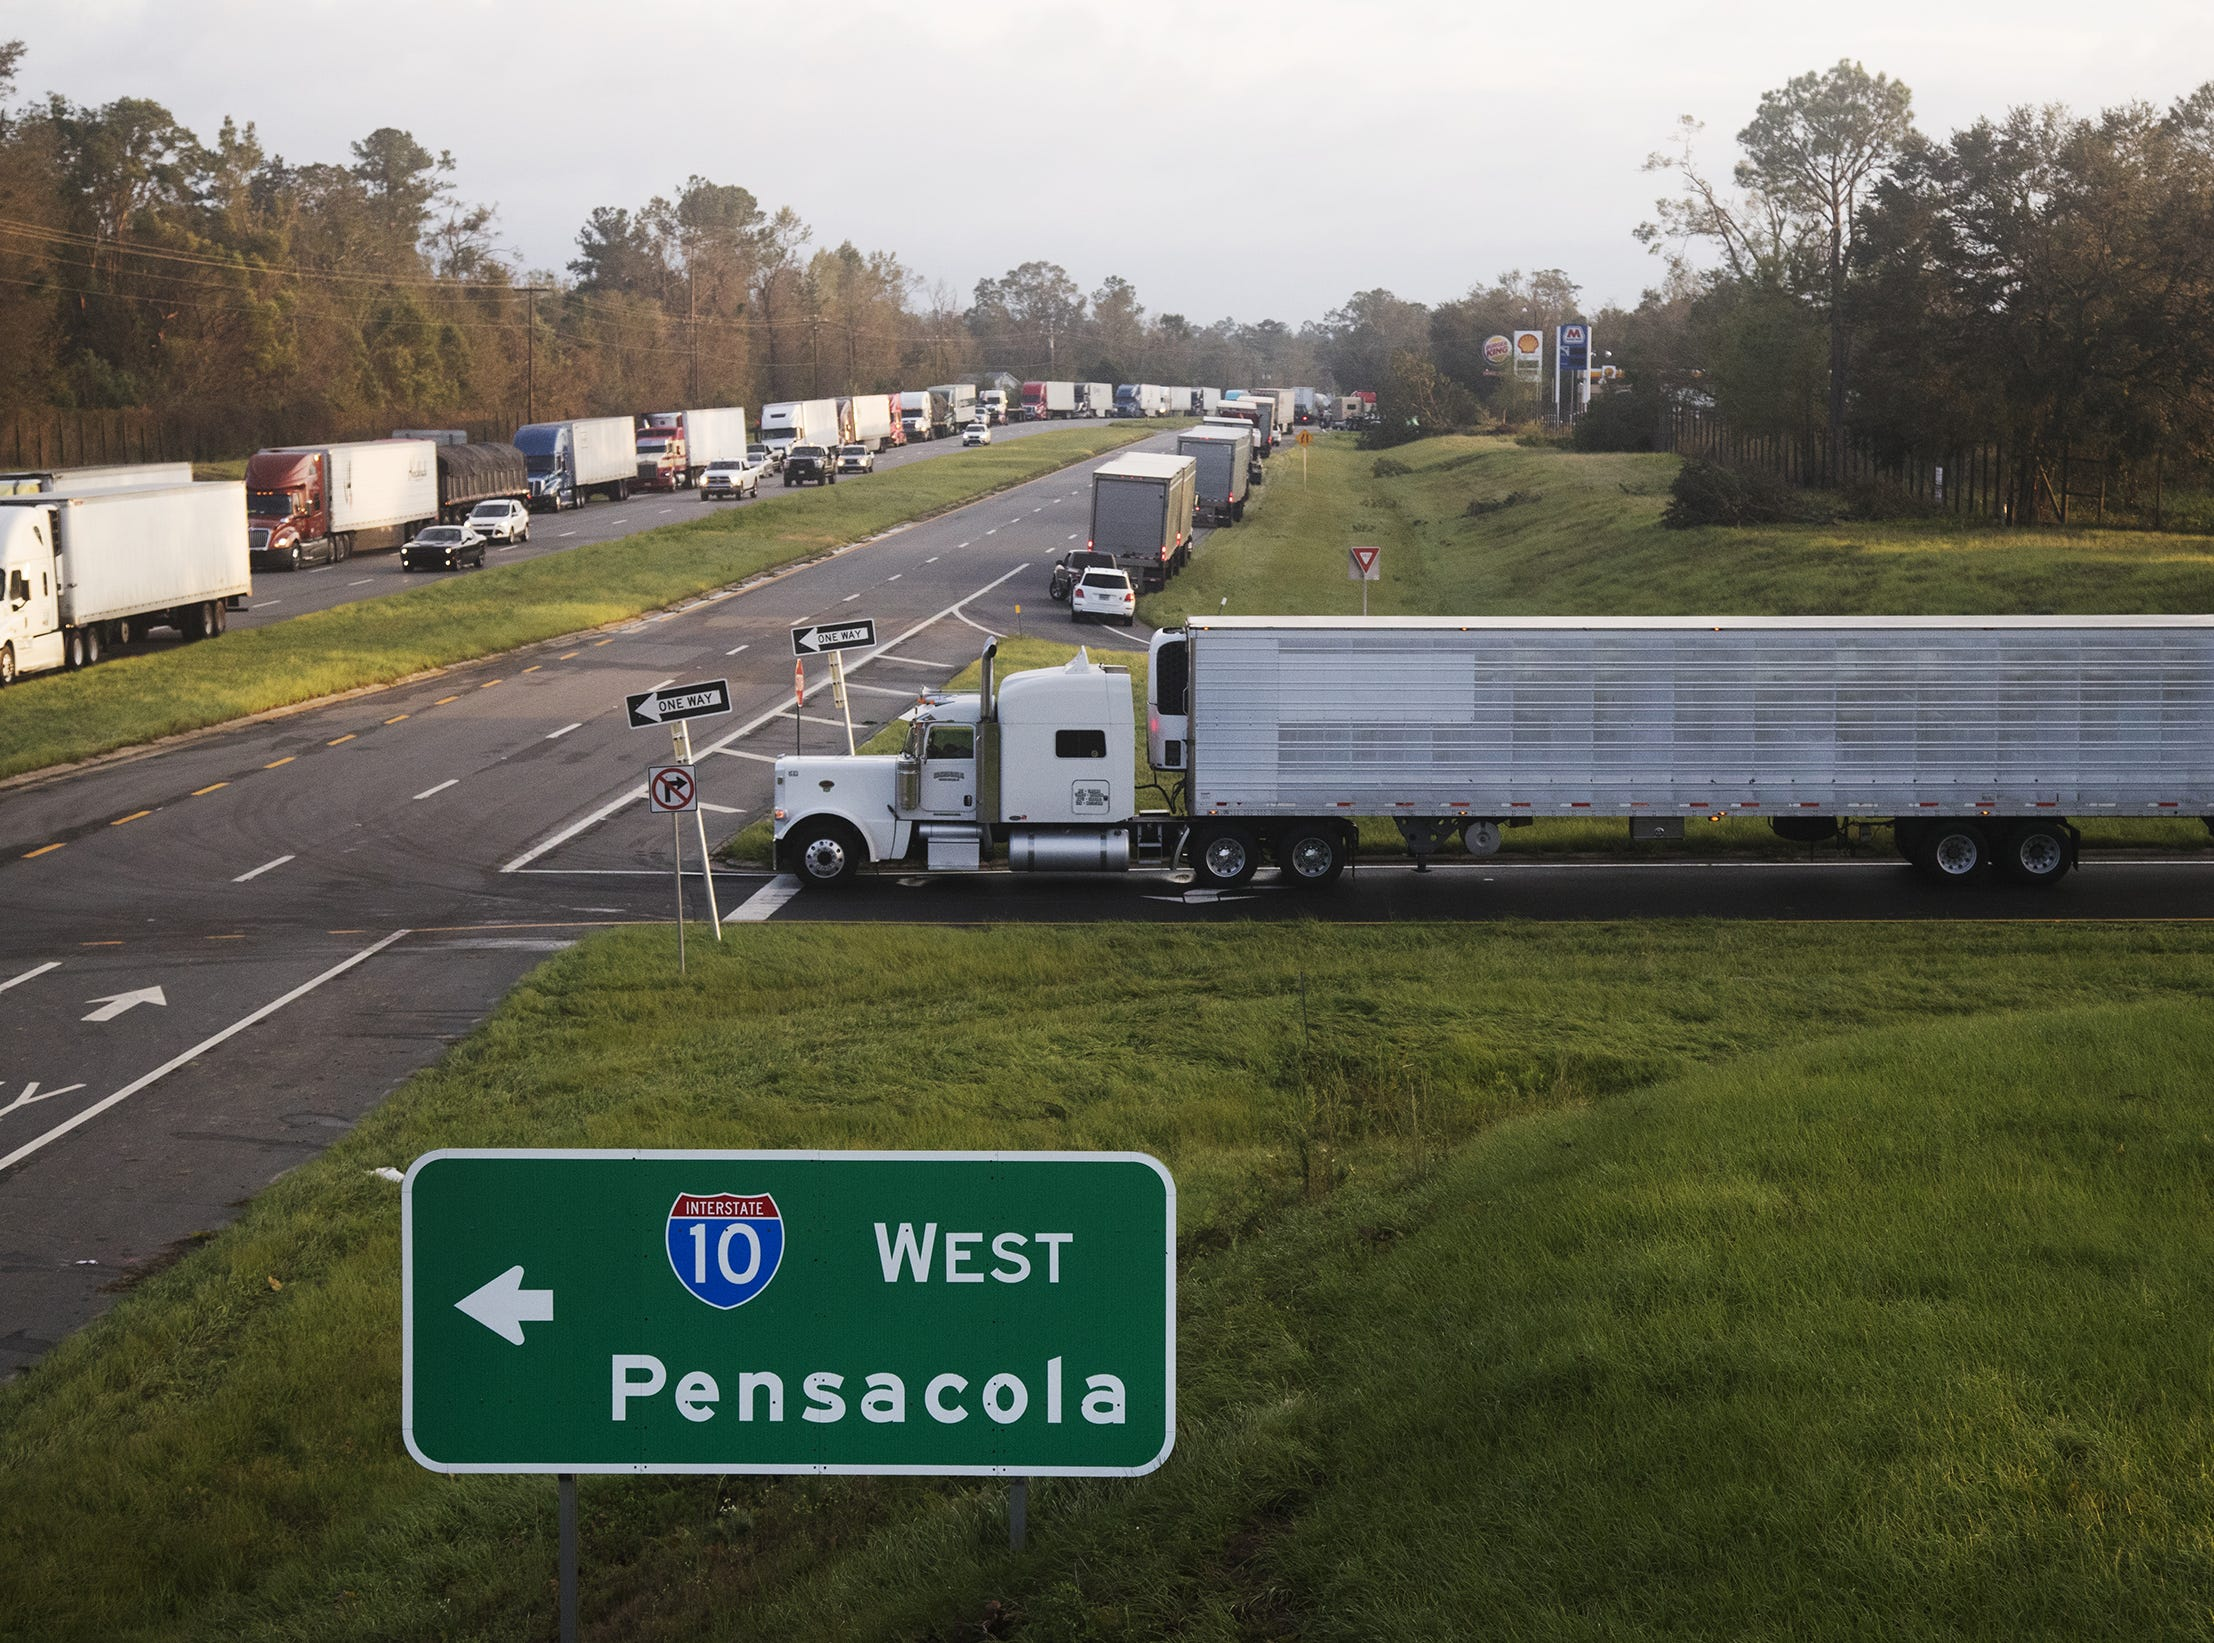 Traffic is denied access to Interstate 10 West at exit 147 in Gadsden County, Fla. Oct. 11, 2018. Downed trees and power lines from Hurricane Michael are preventing non-essential travel to Panama City using 10 West. Portions of 10 West are closed for 80 miles.